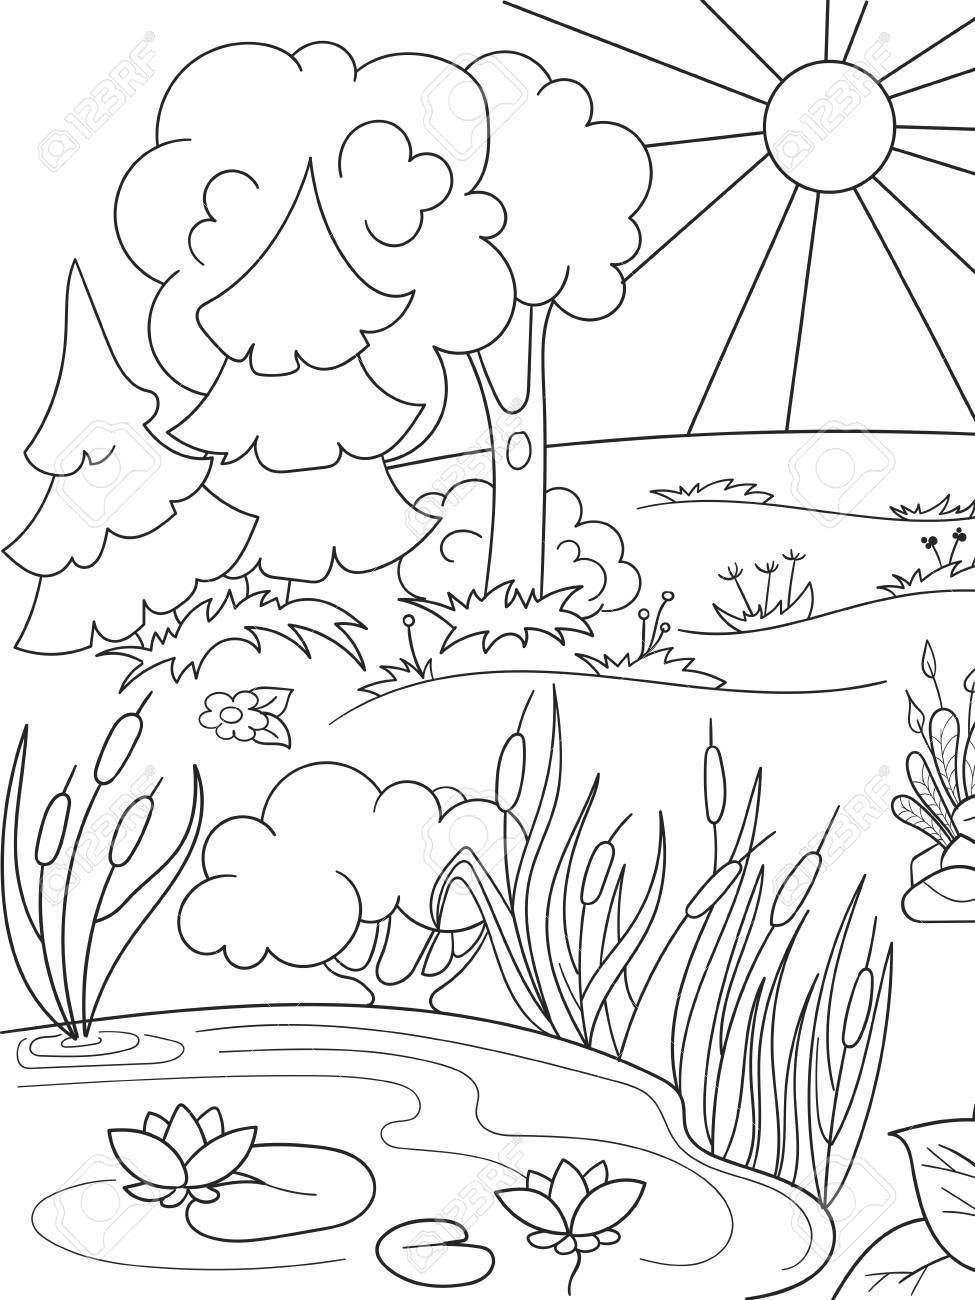 Nature Black And White Clipart.